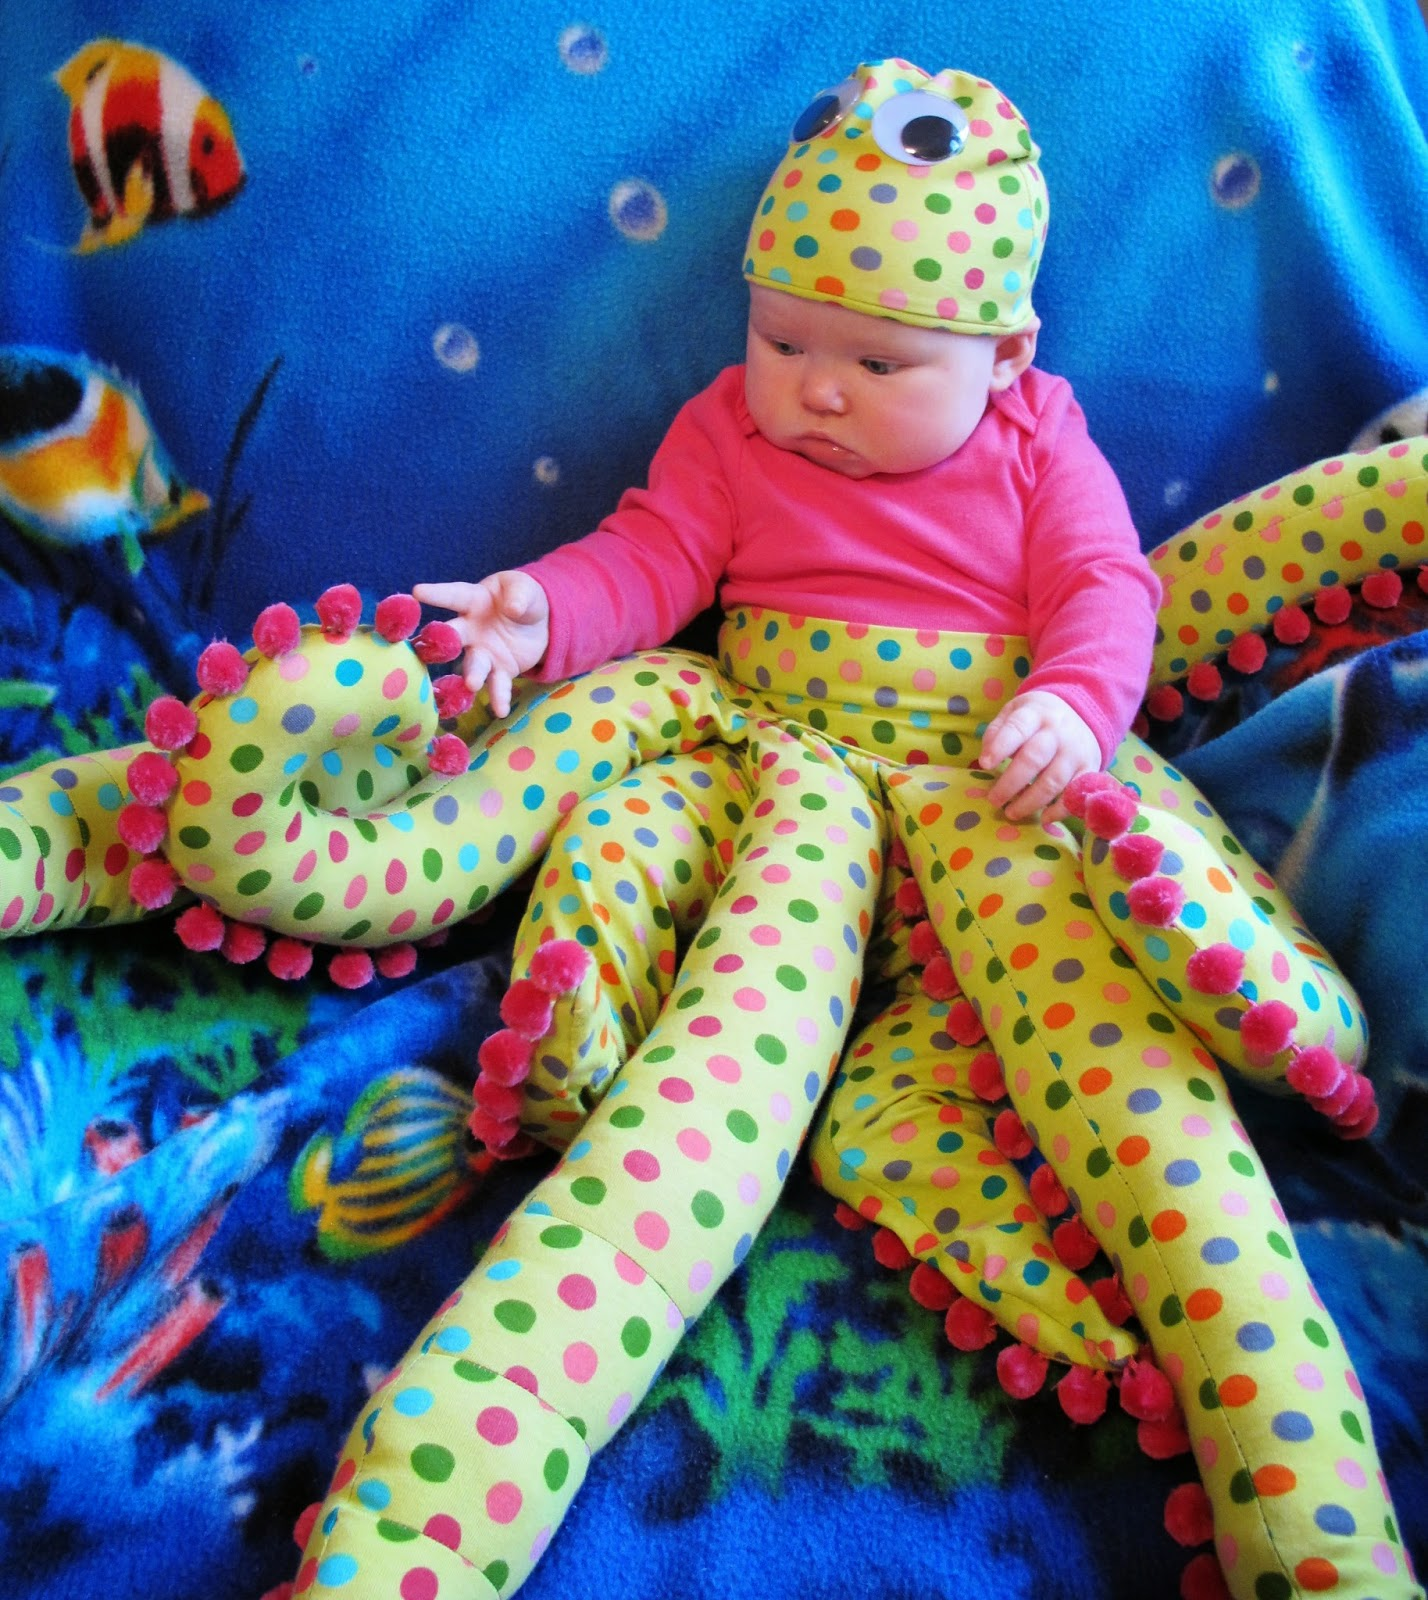 Baby Octopus Costume | bonnieprojects.blogspot.com